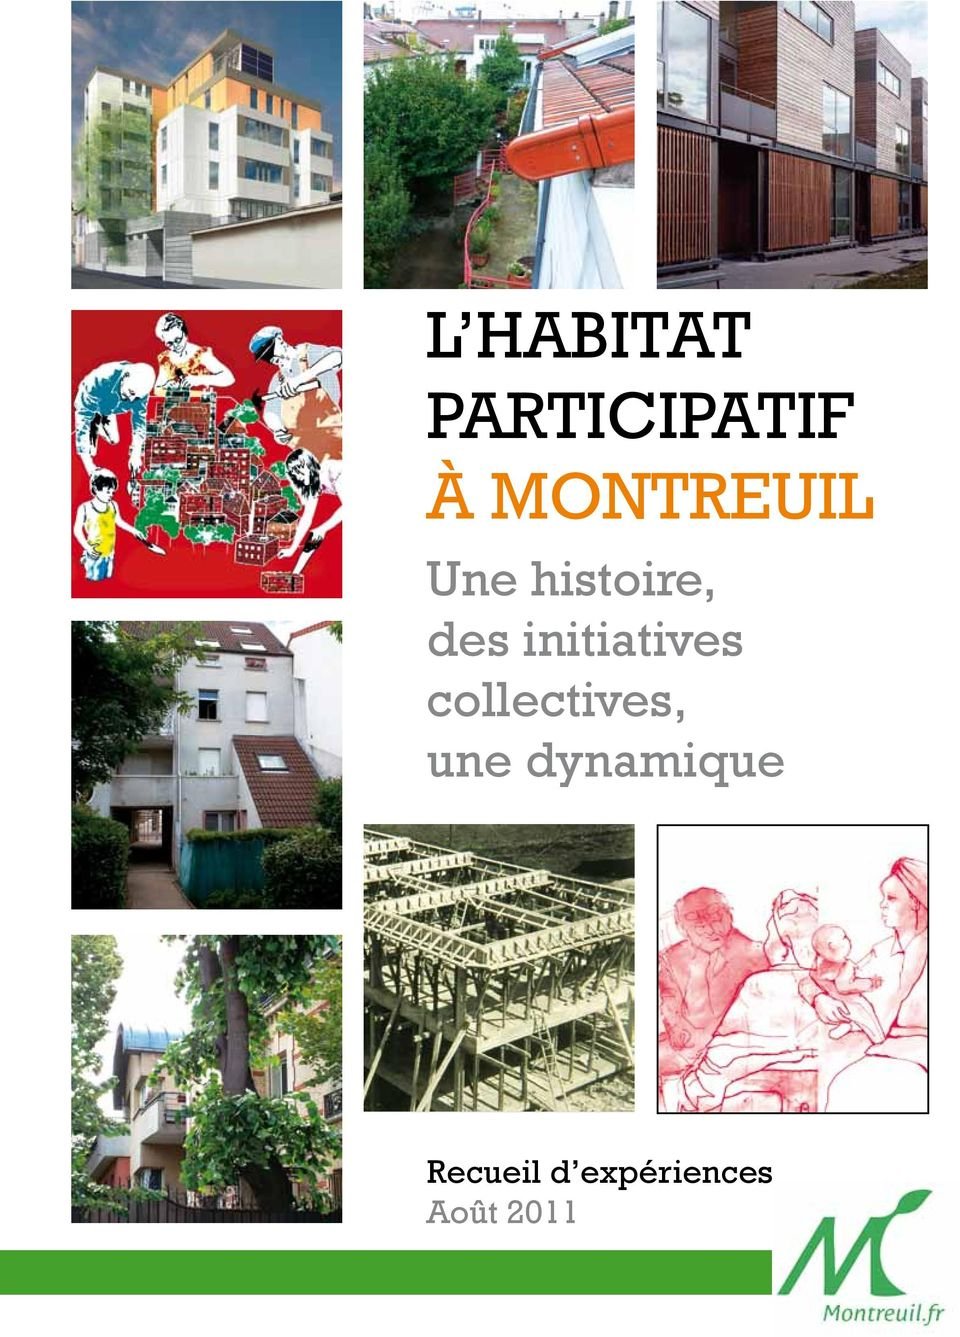 initiatives collectives, une